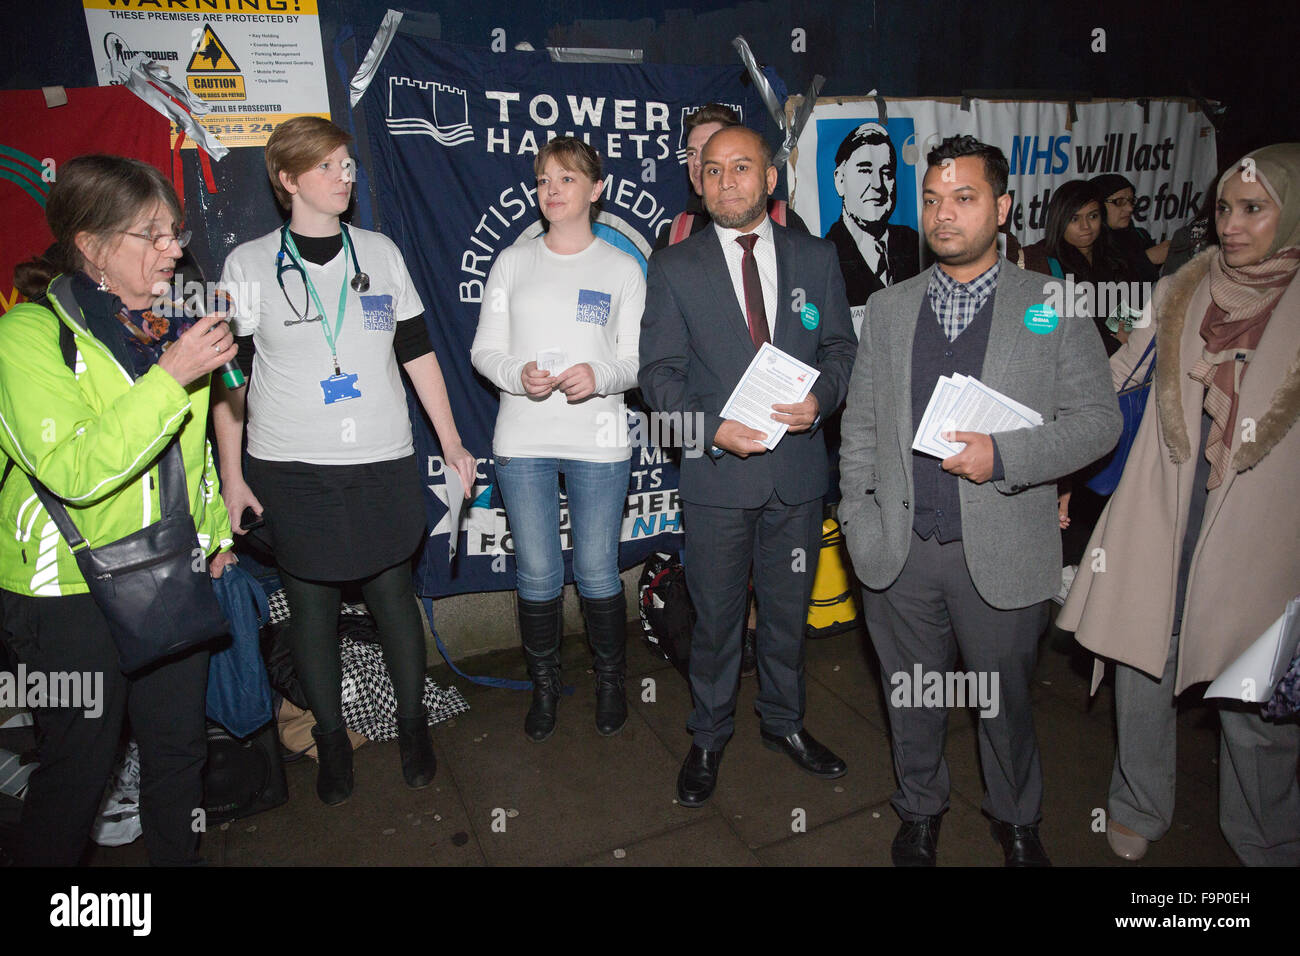 London, UK. 17th December, 2015. Supporters of the junior doctors and student nurses, including Councillors Oliur - Stock Image